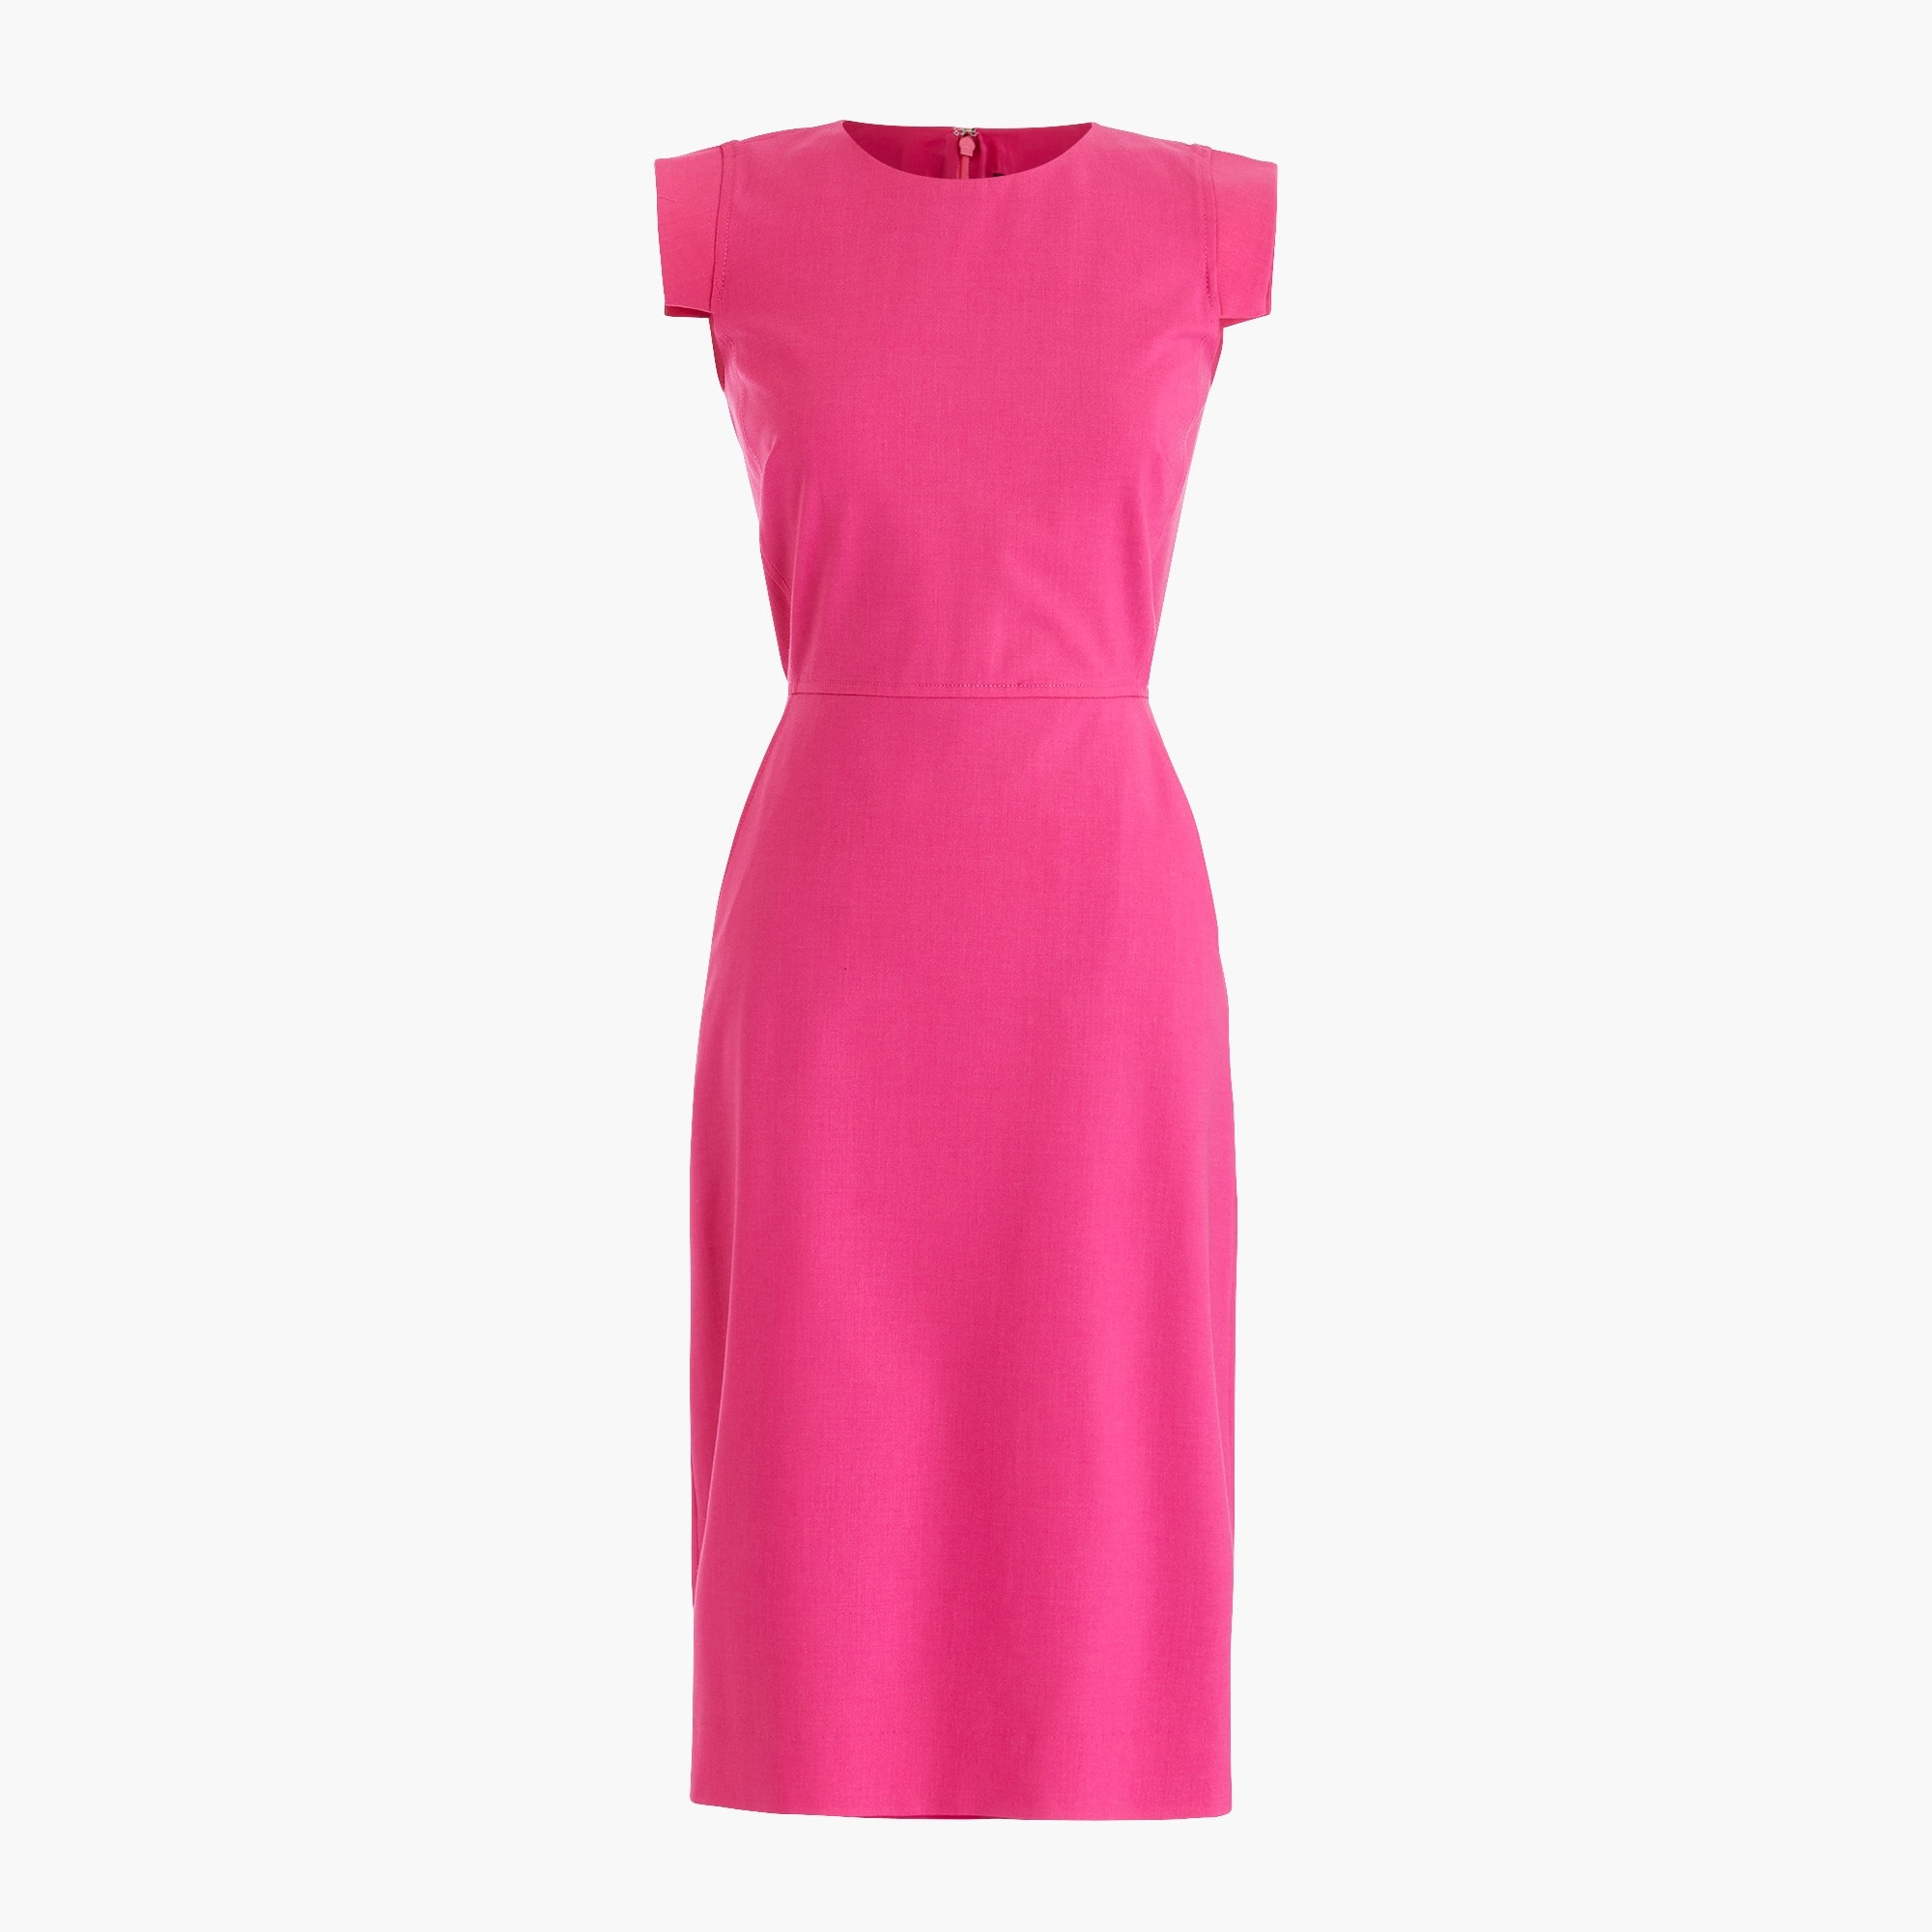 womens Résumé dress